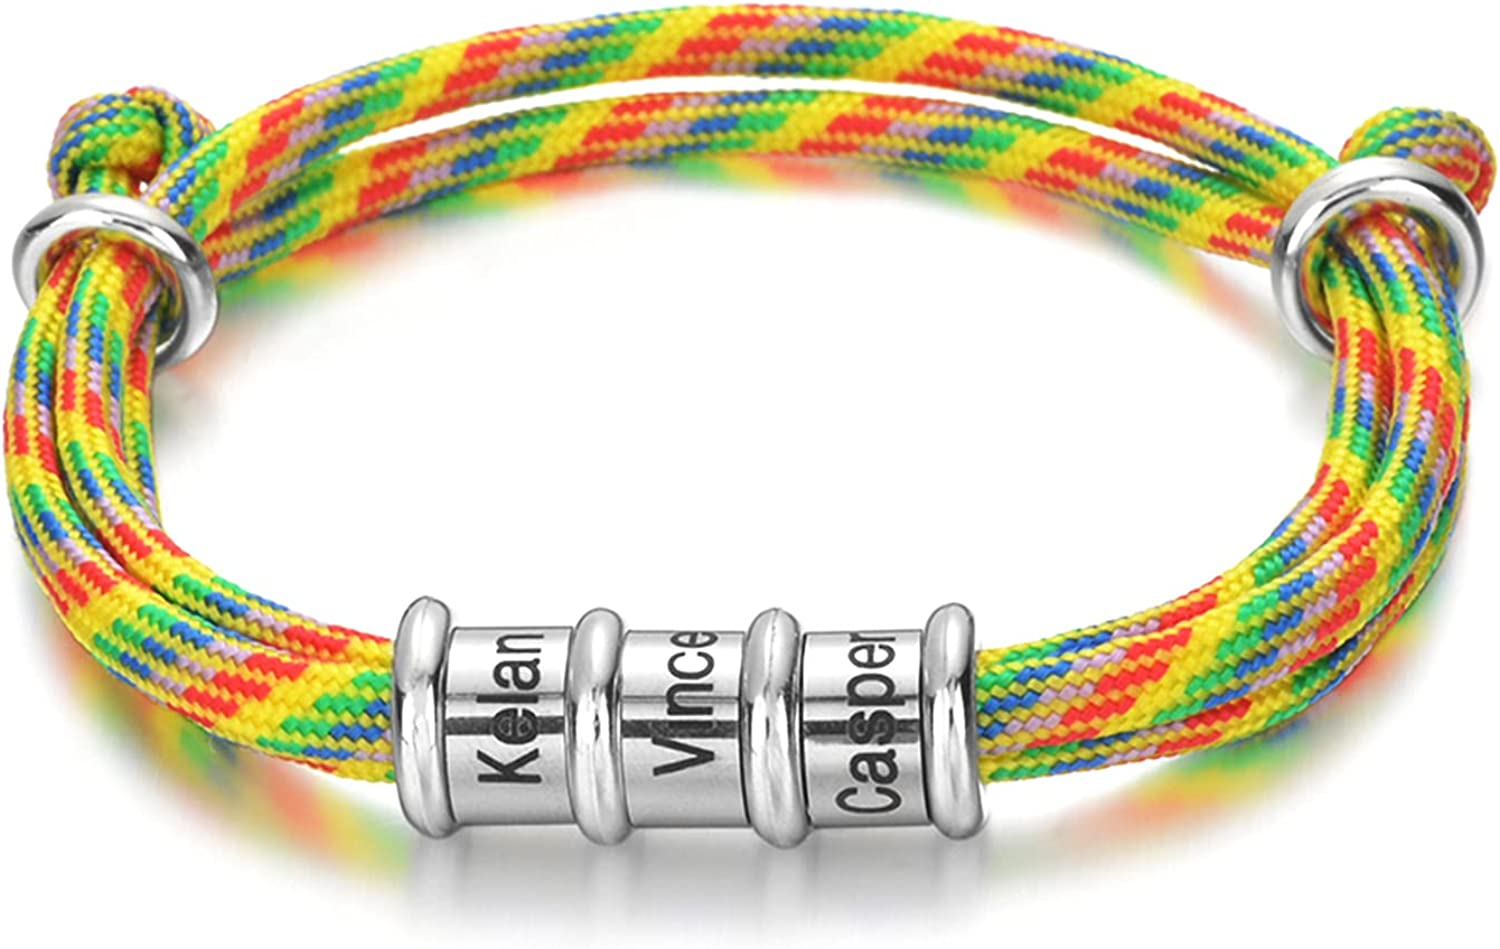 Brand Cheap Sale Venue soulglass Personalized Mens Rope Adjustable Braided wit Free shipping on posting reviews Bracelet